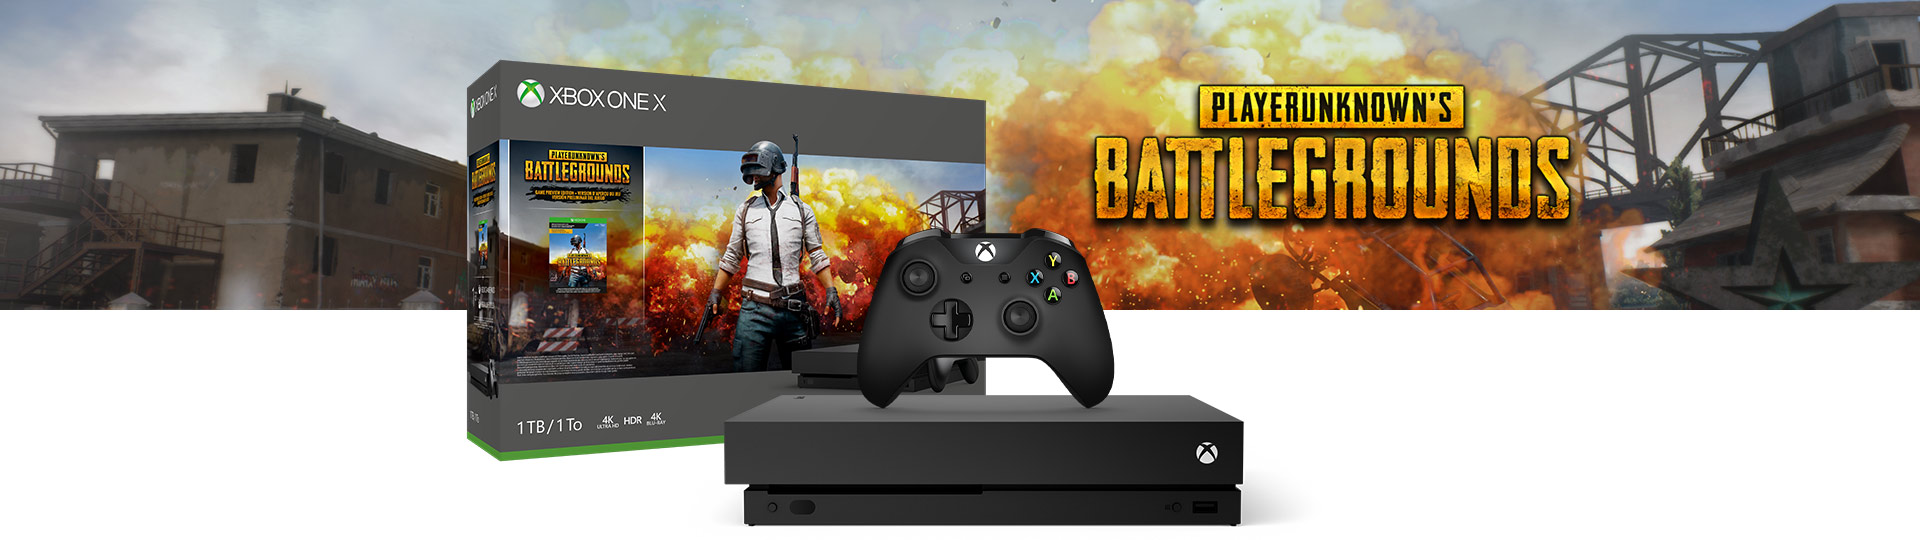 Xbox One X PlayerUnknowns Battlegrounds 1 terabayt ürün kutusunun yanında duran Xbox One X ve Oyun Kumandası